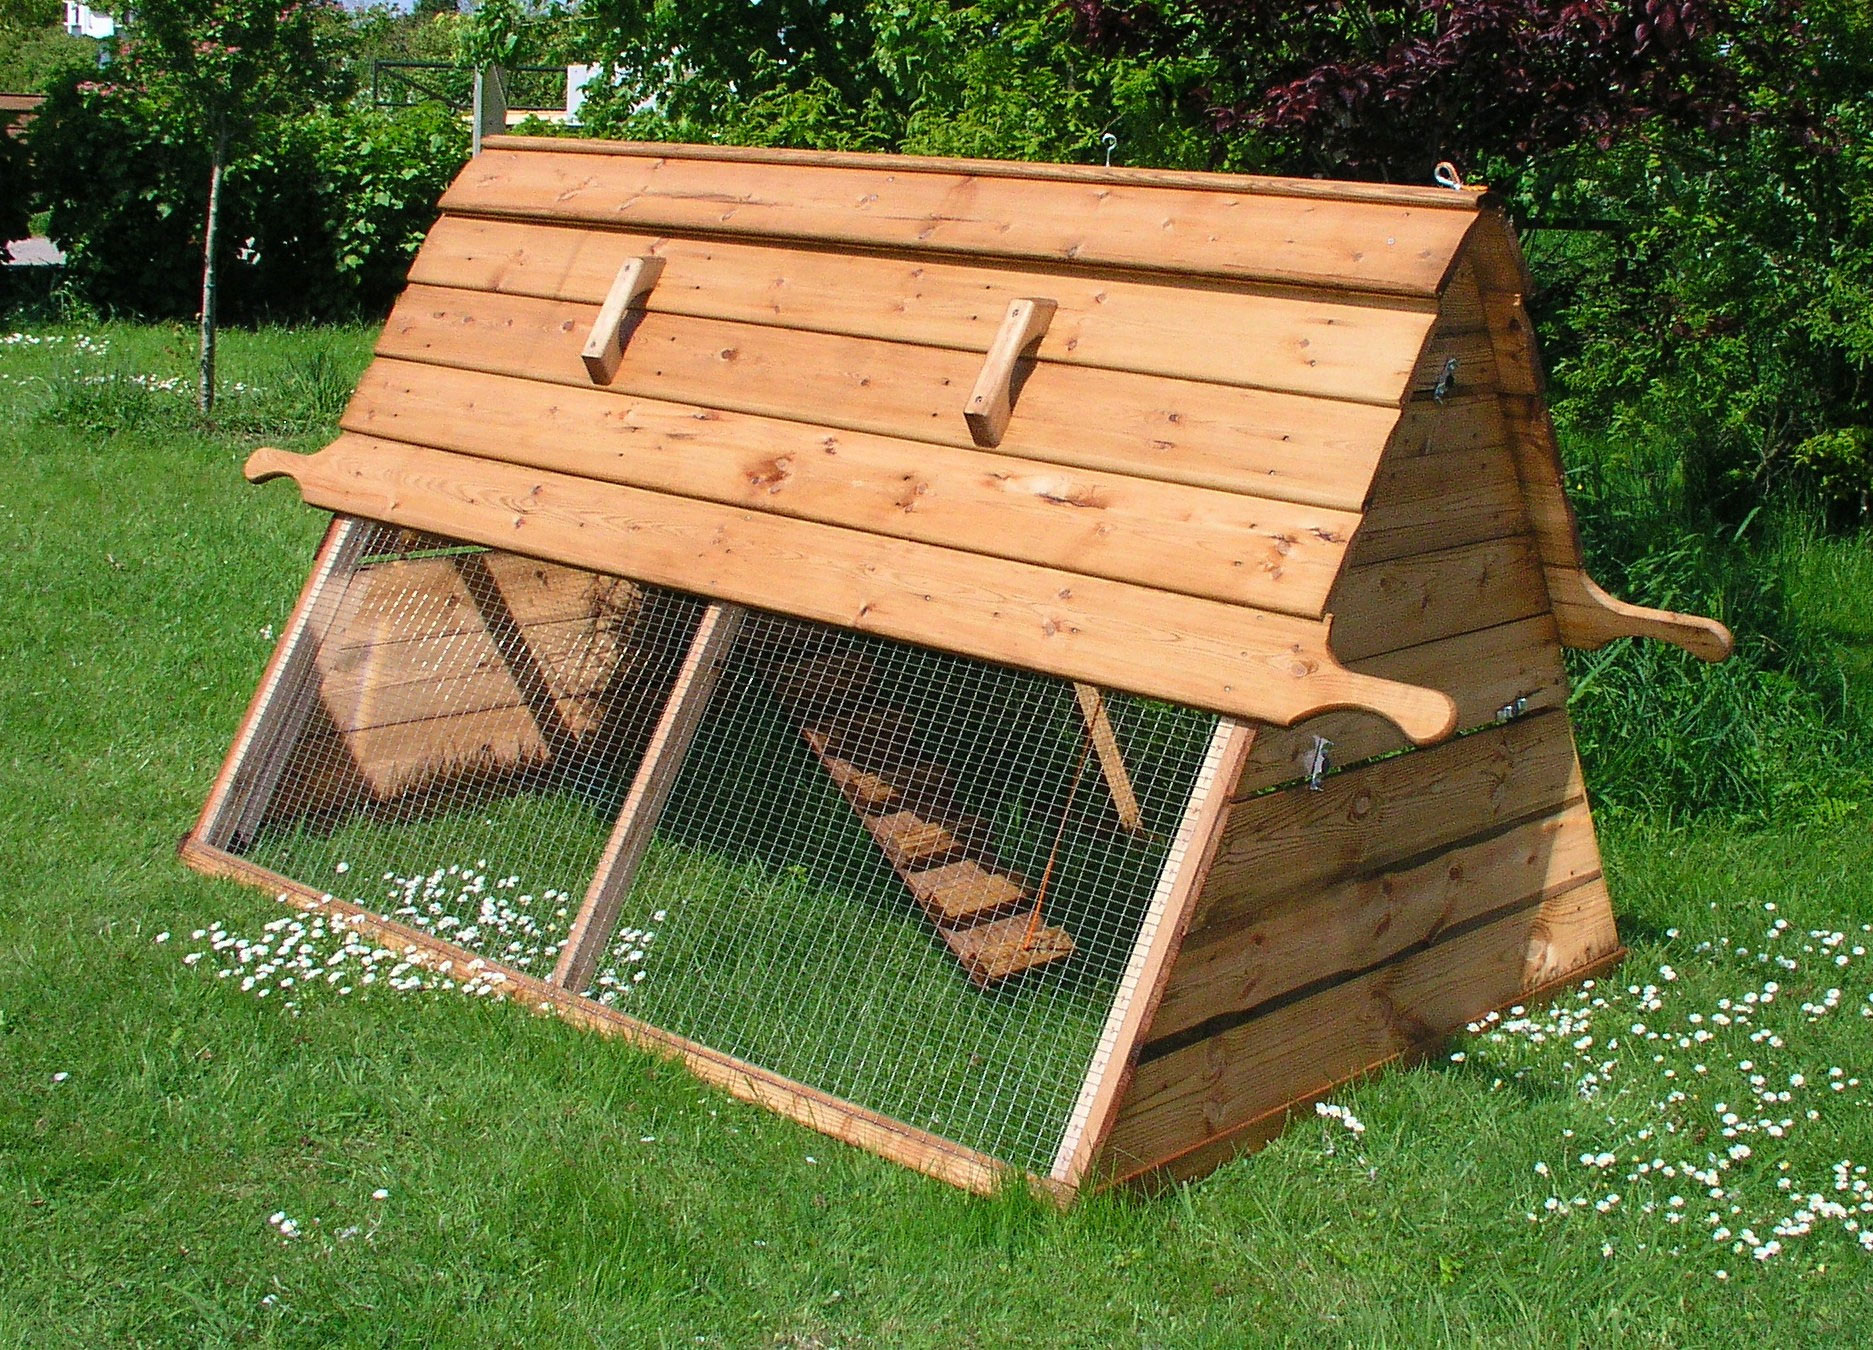 Boughton chicken coop by forsham cottage arks chicken coops walk in chicken runs chicken fencing and more omlet